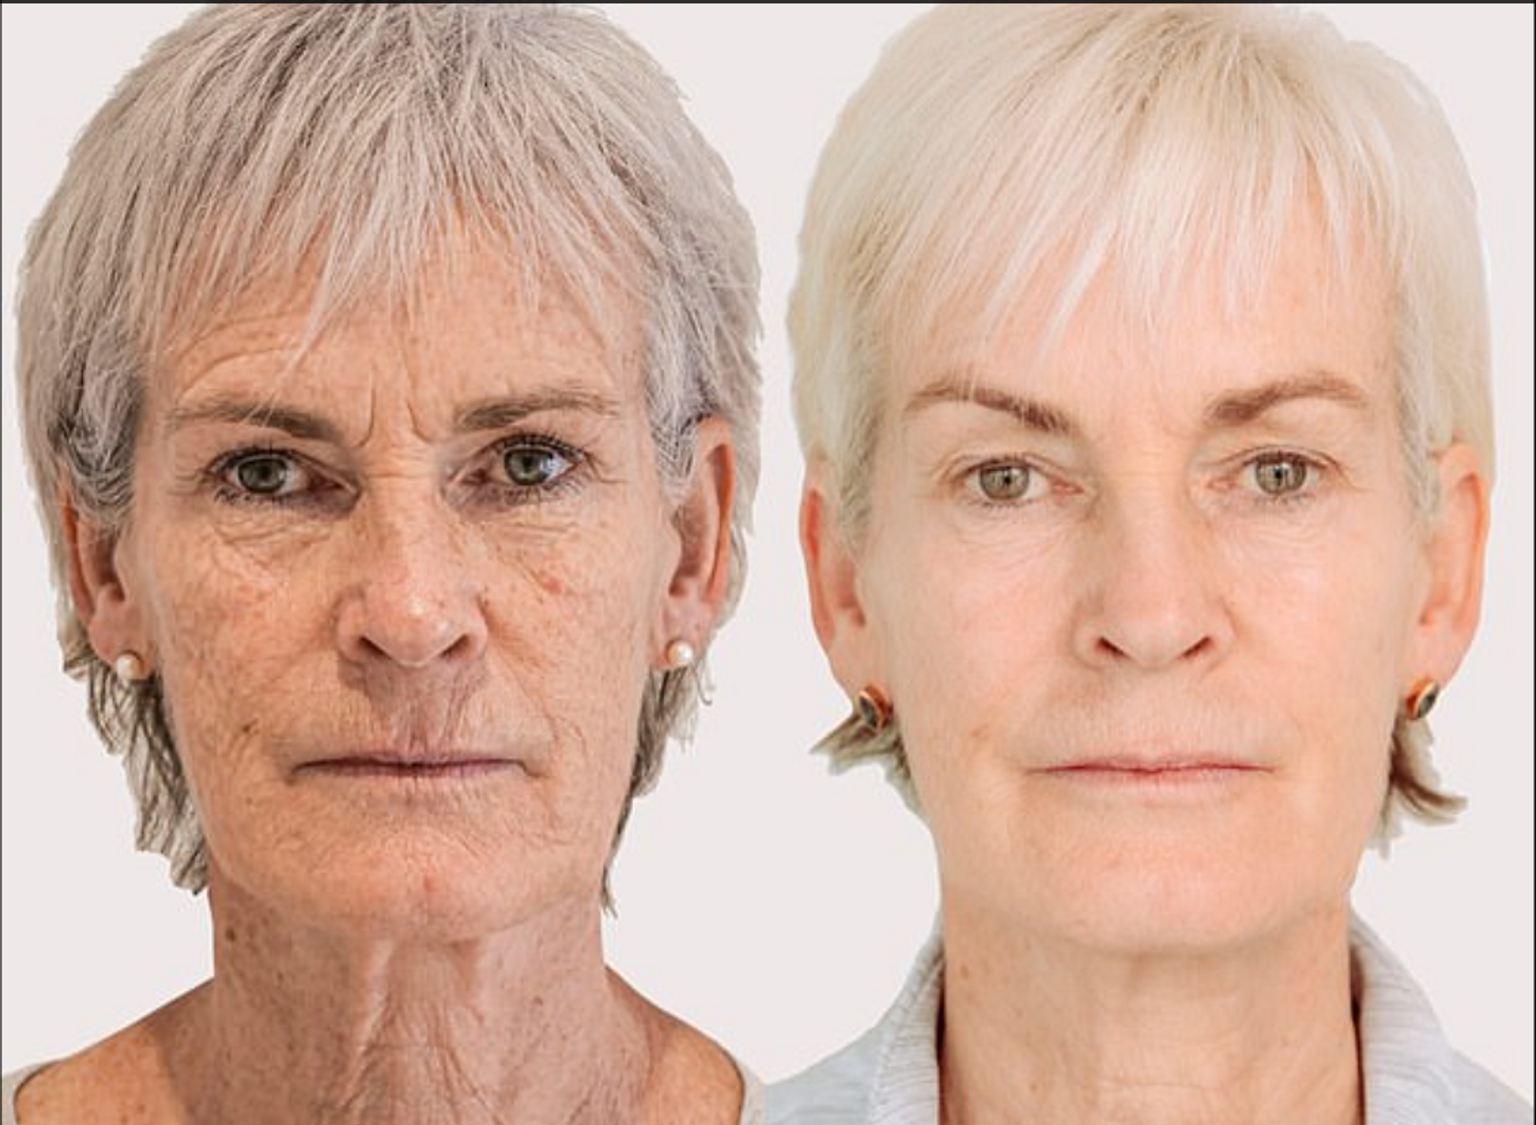 Judy had three sessions of the Morpheus8 treatment over the course of a year, alongside the Obagi NuDerm system and looks amazing as a result (Photo credit: Cavendish Media)